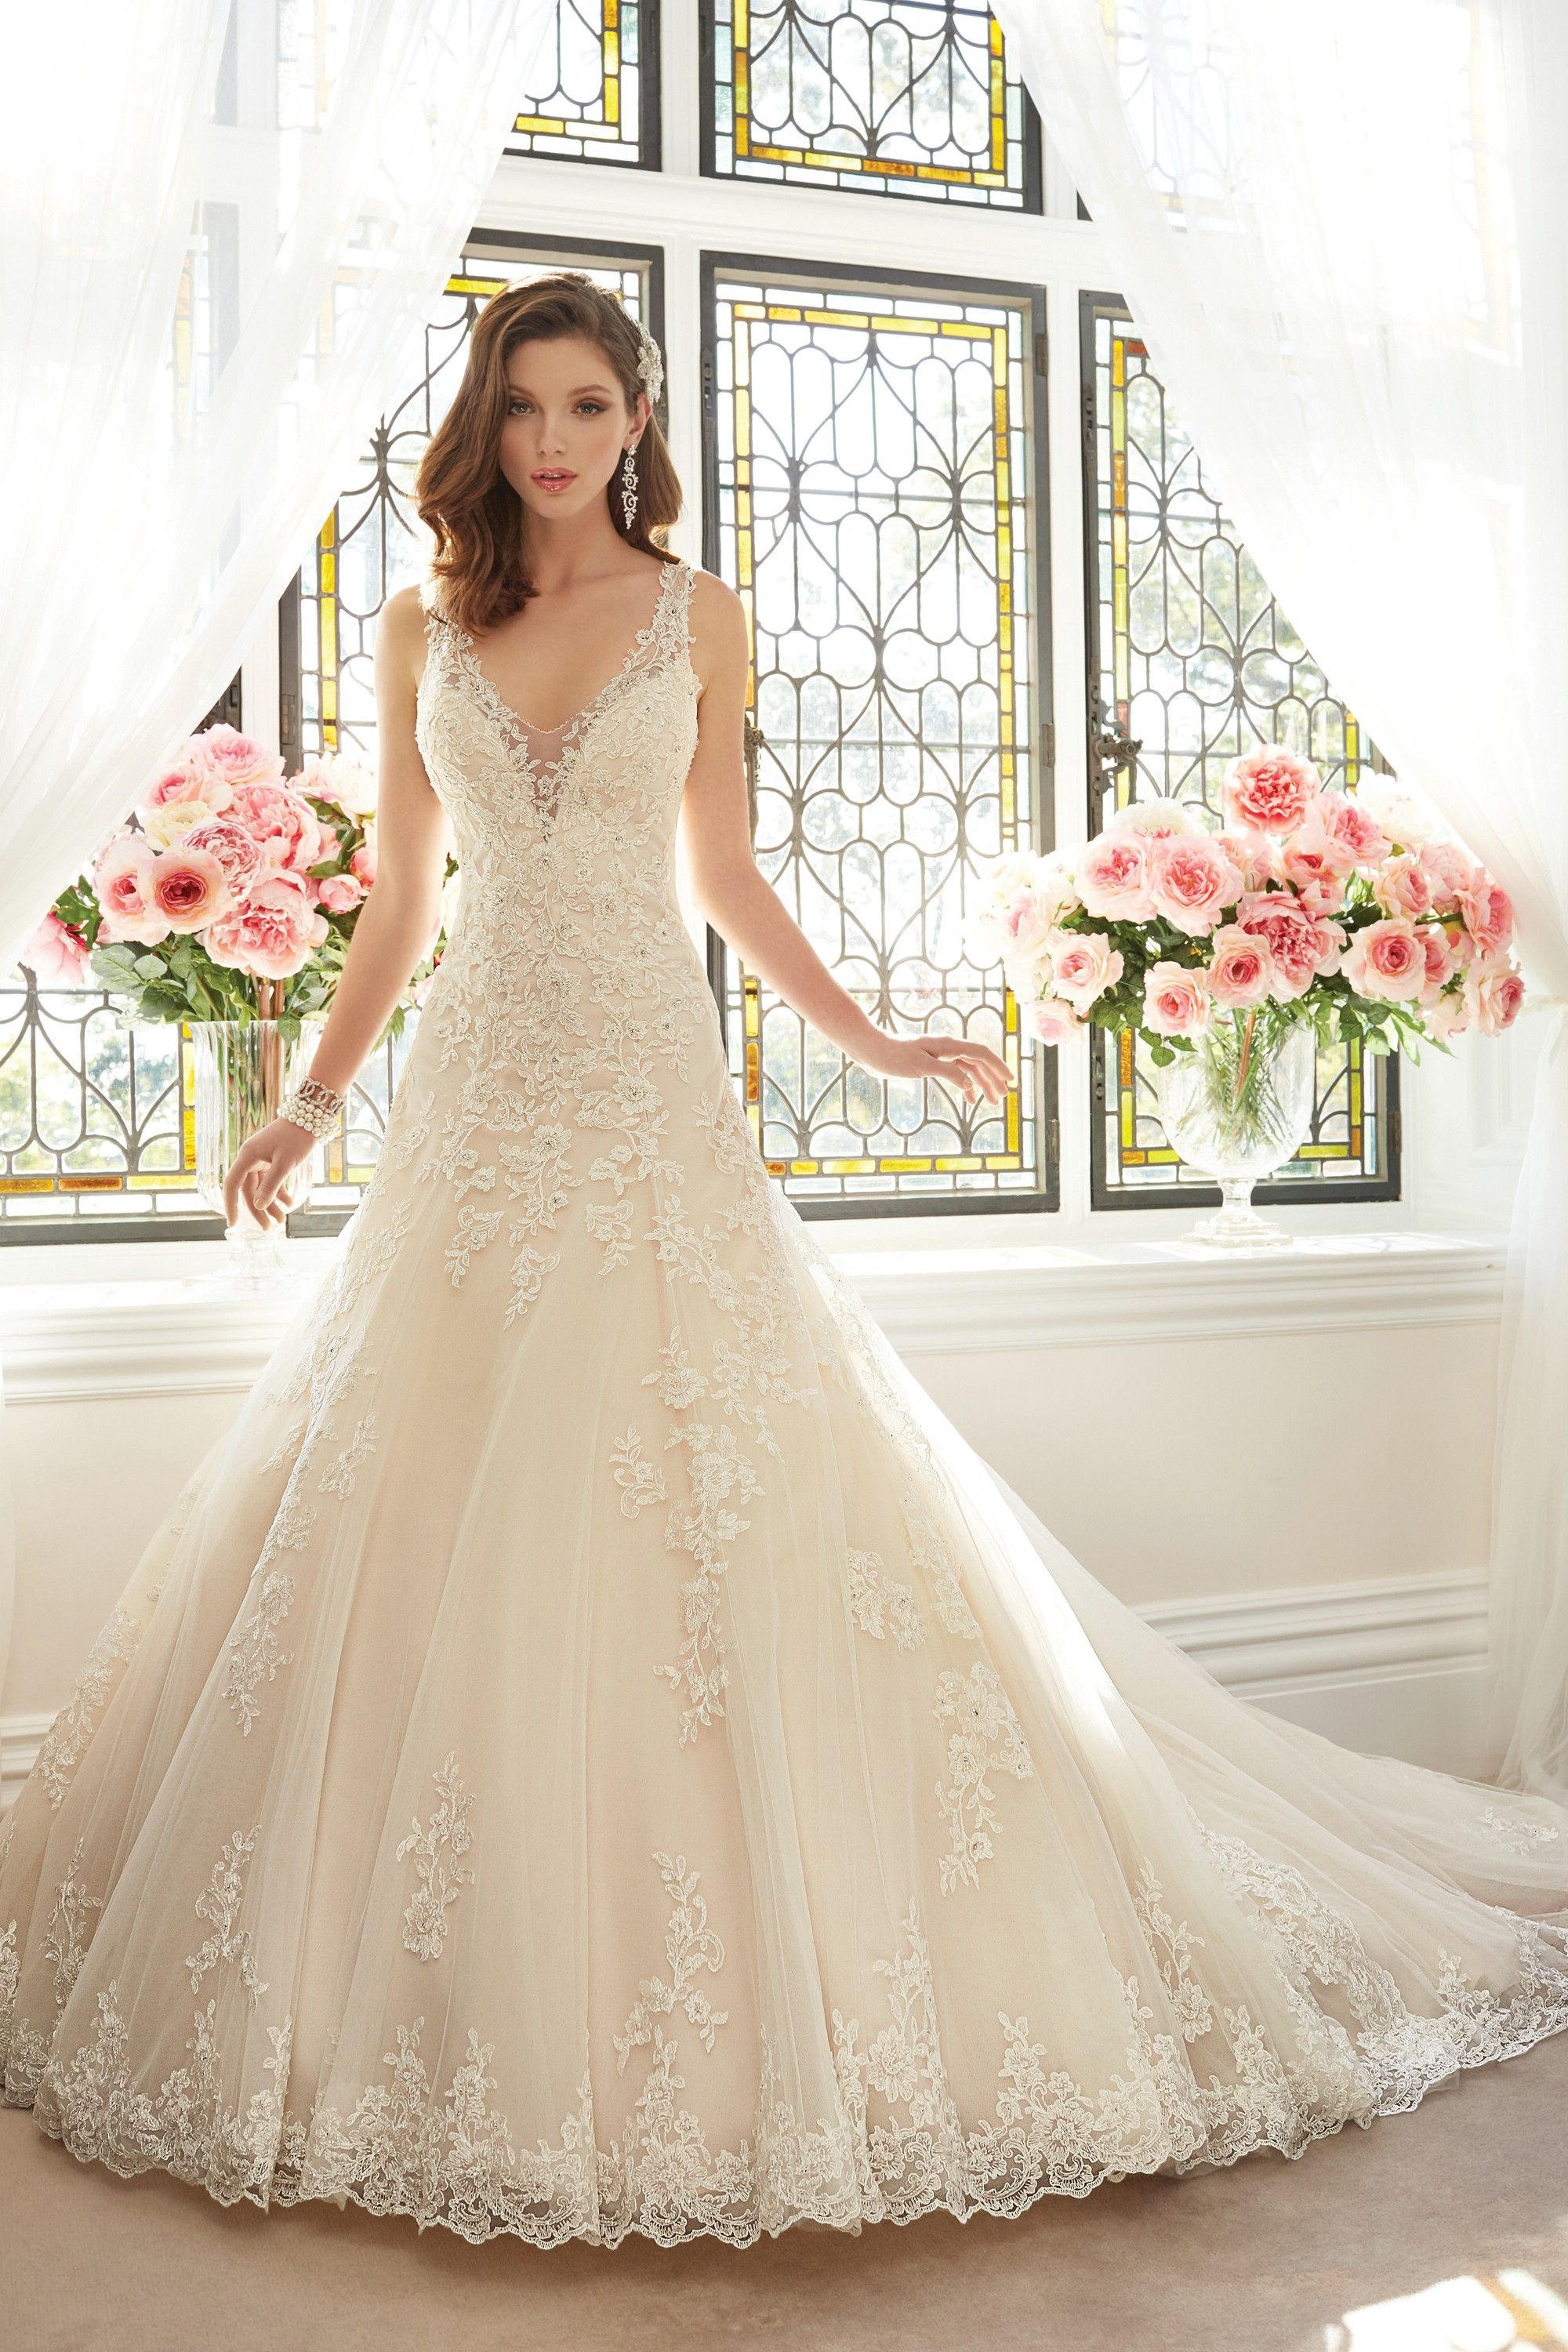 Wedding Dresses Bridesmaid Prom And Bridal Sophia Tolli